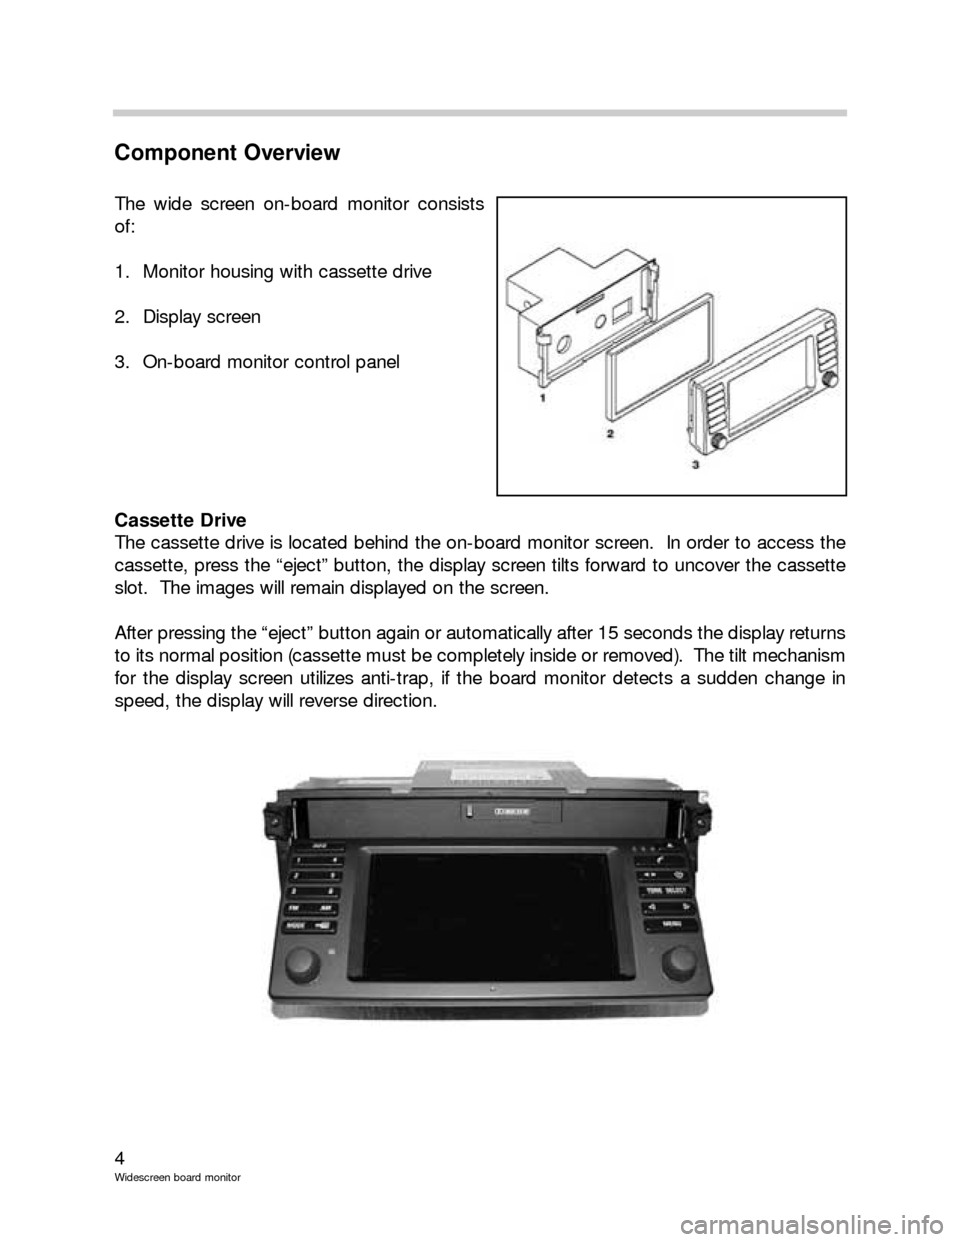 BMW 5 SERIES 2001 E39 Wide Screen On Board Monitor Workshop Manual, Page 4